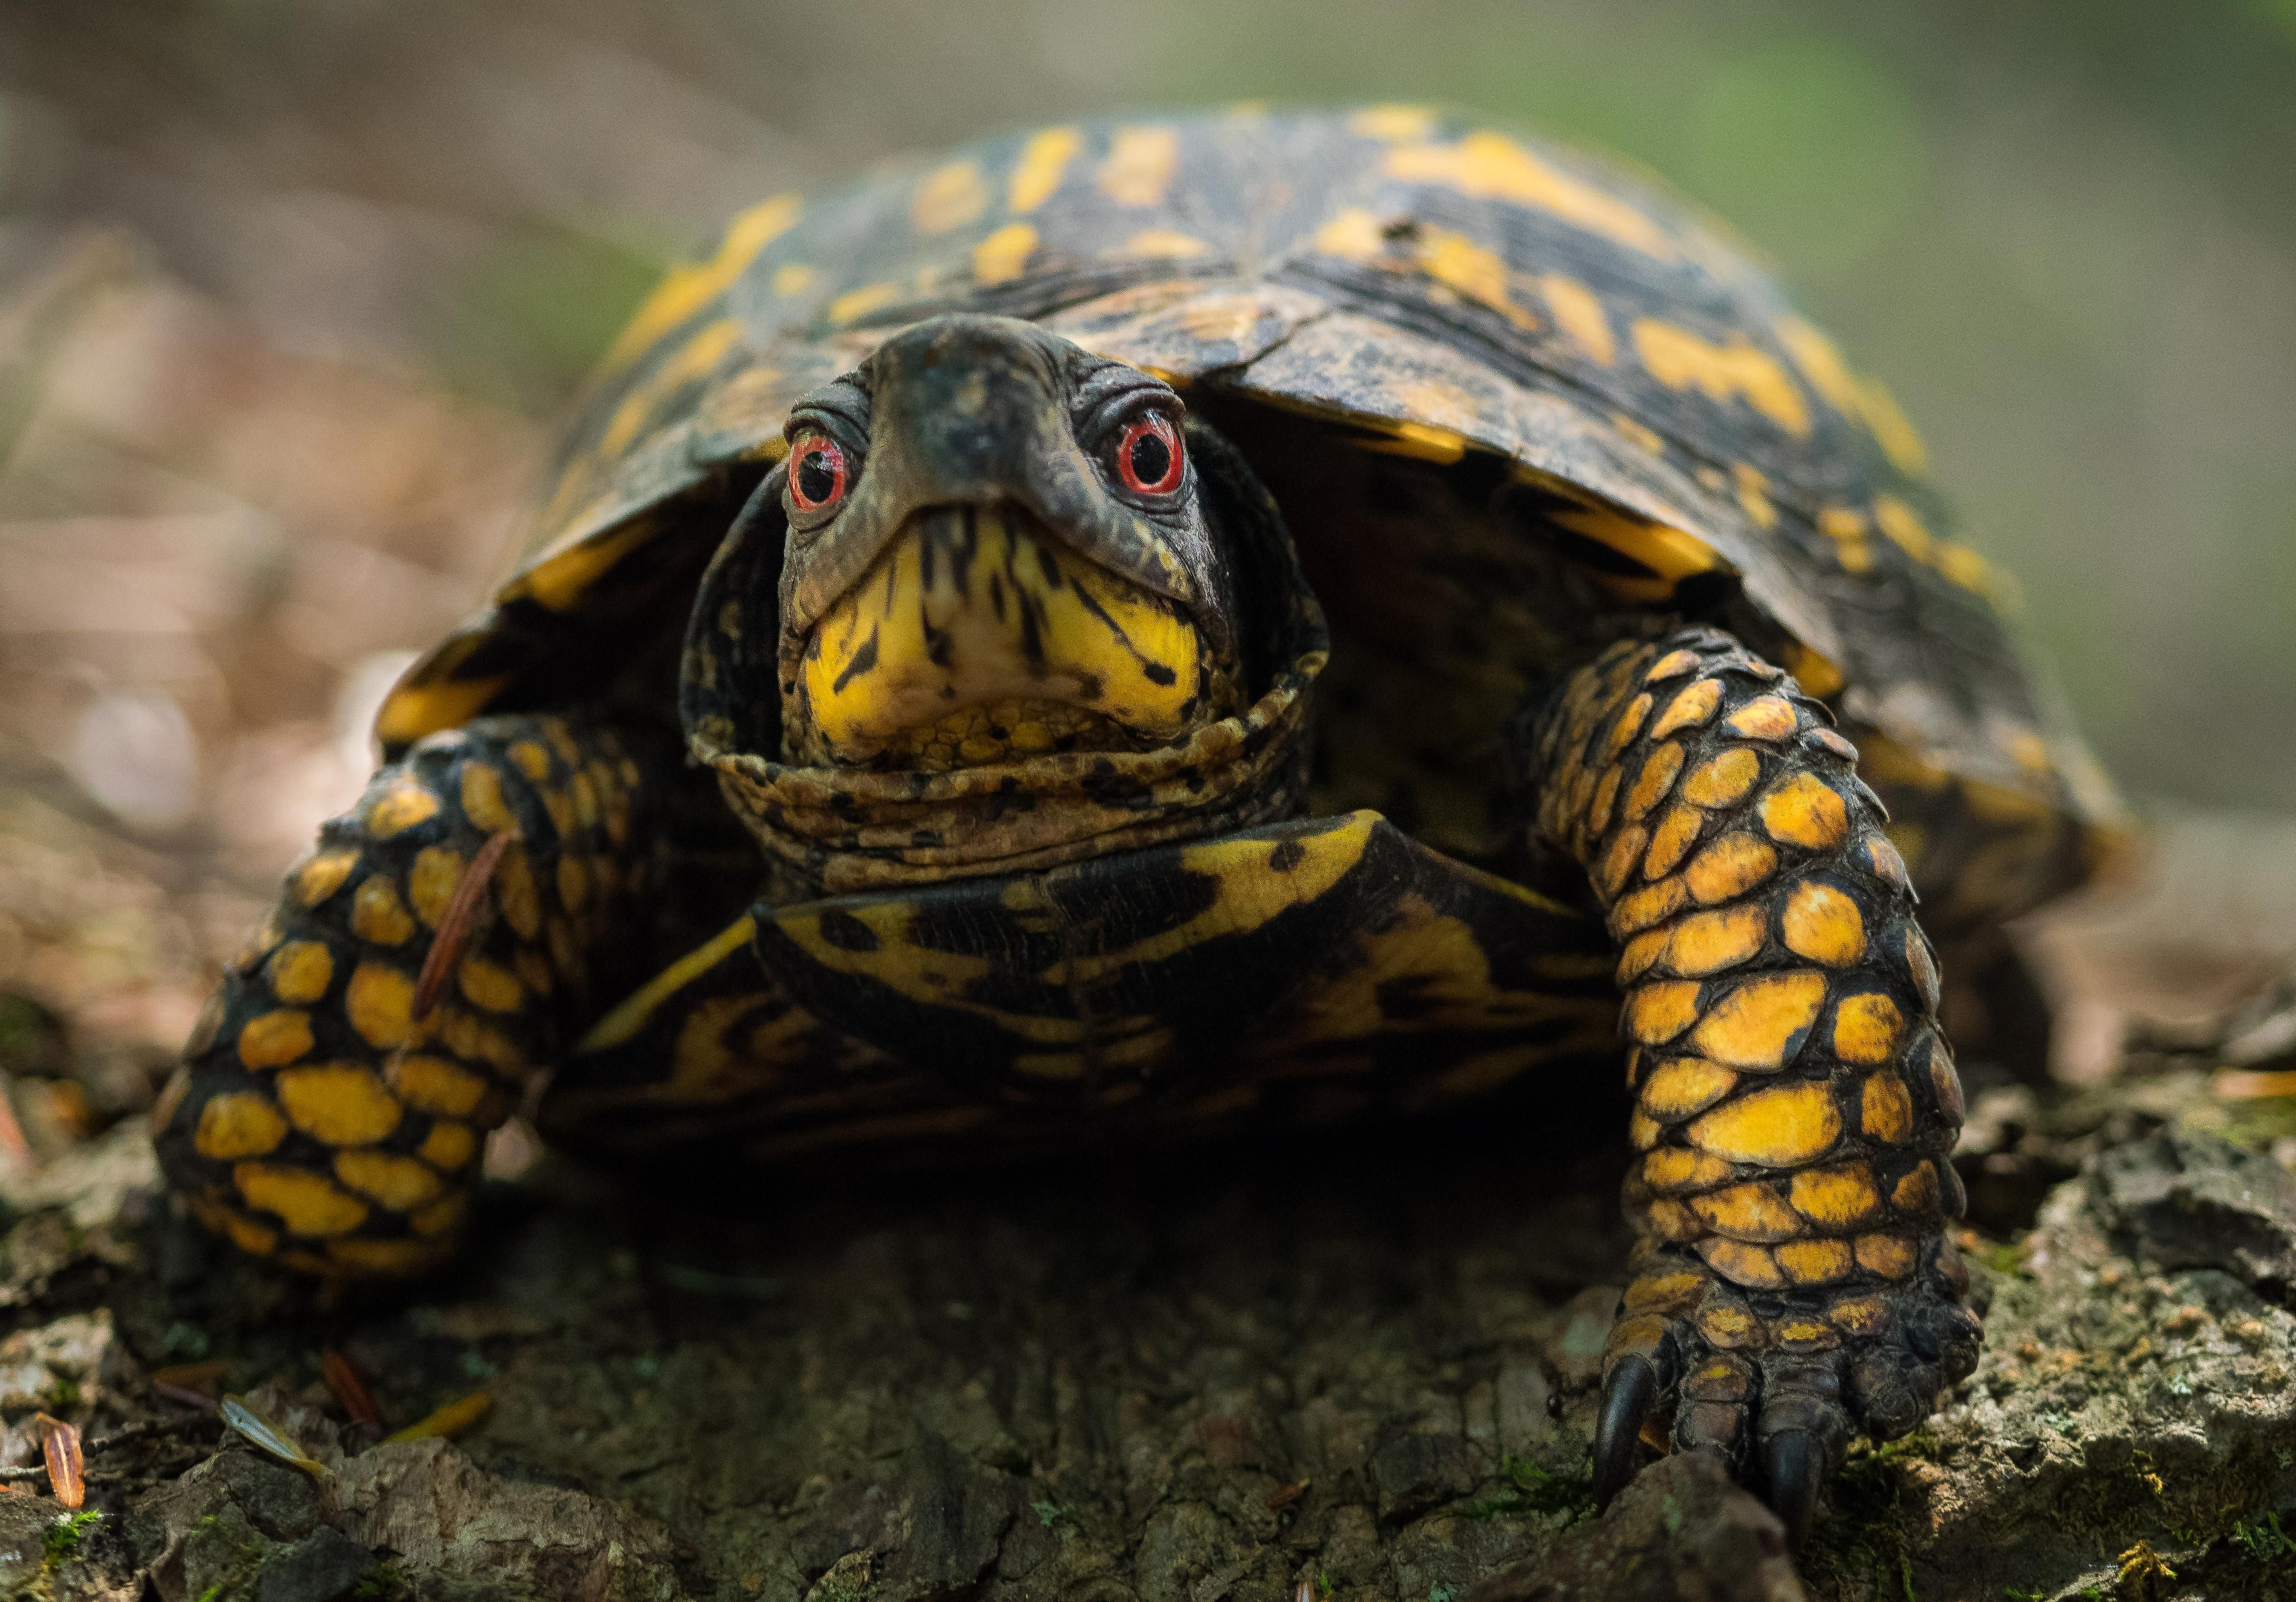 An eastern box turtle is looking directly at the camera.